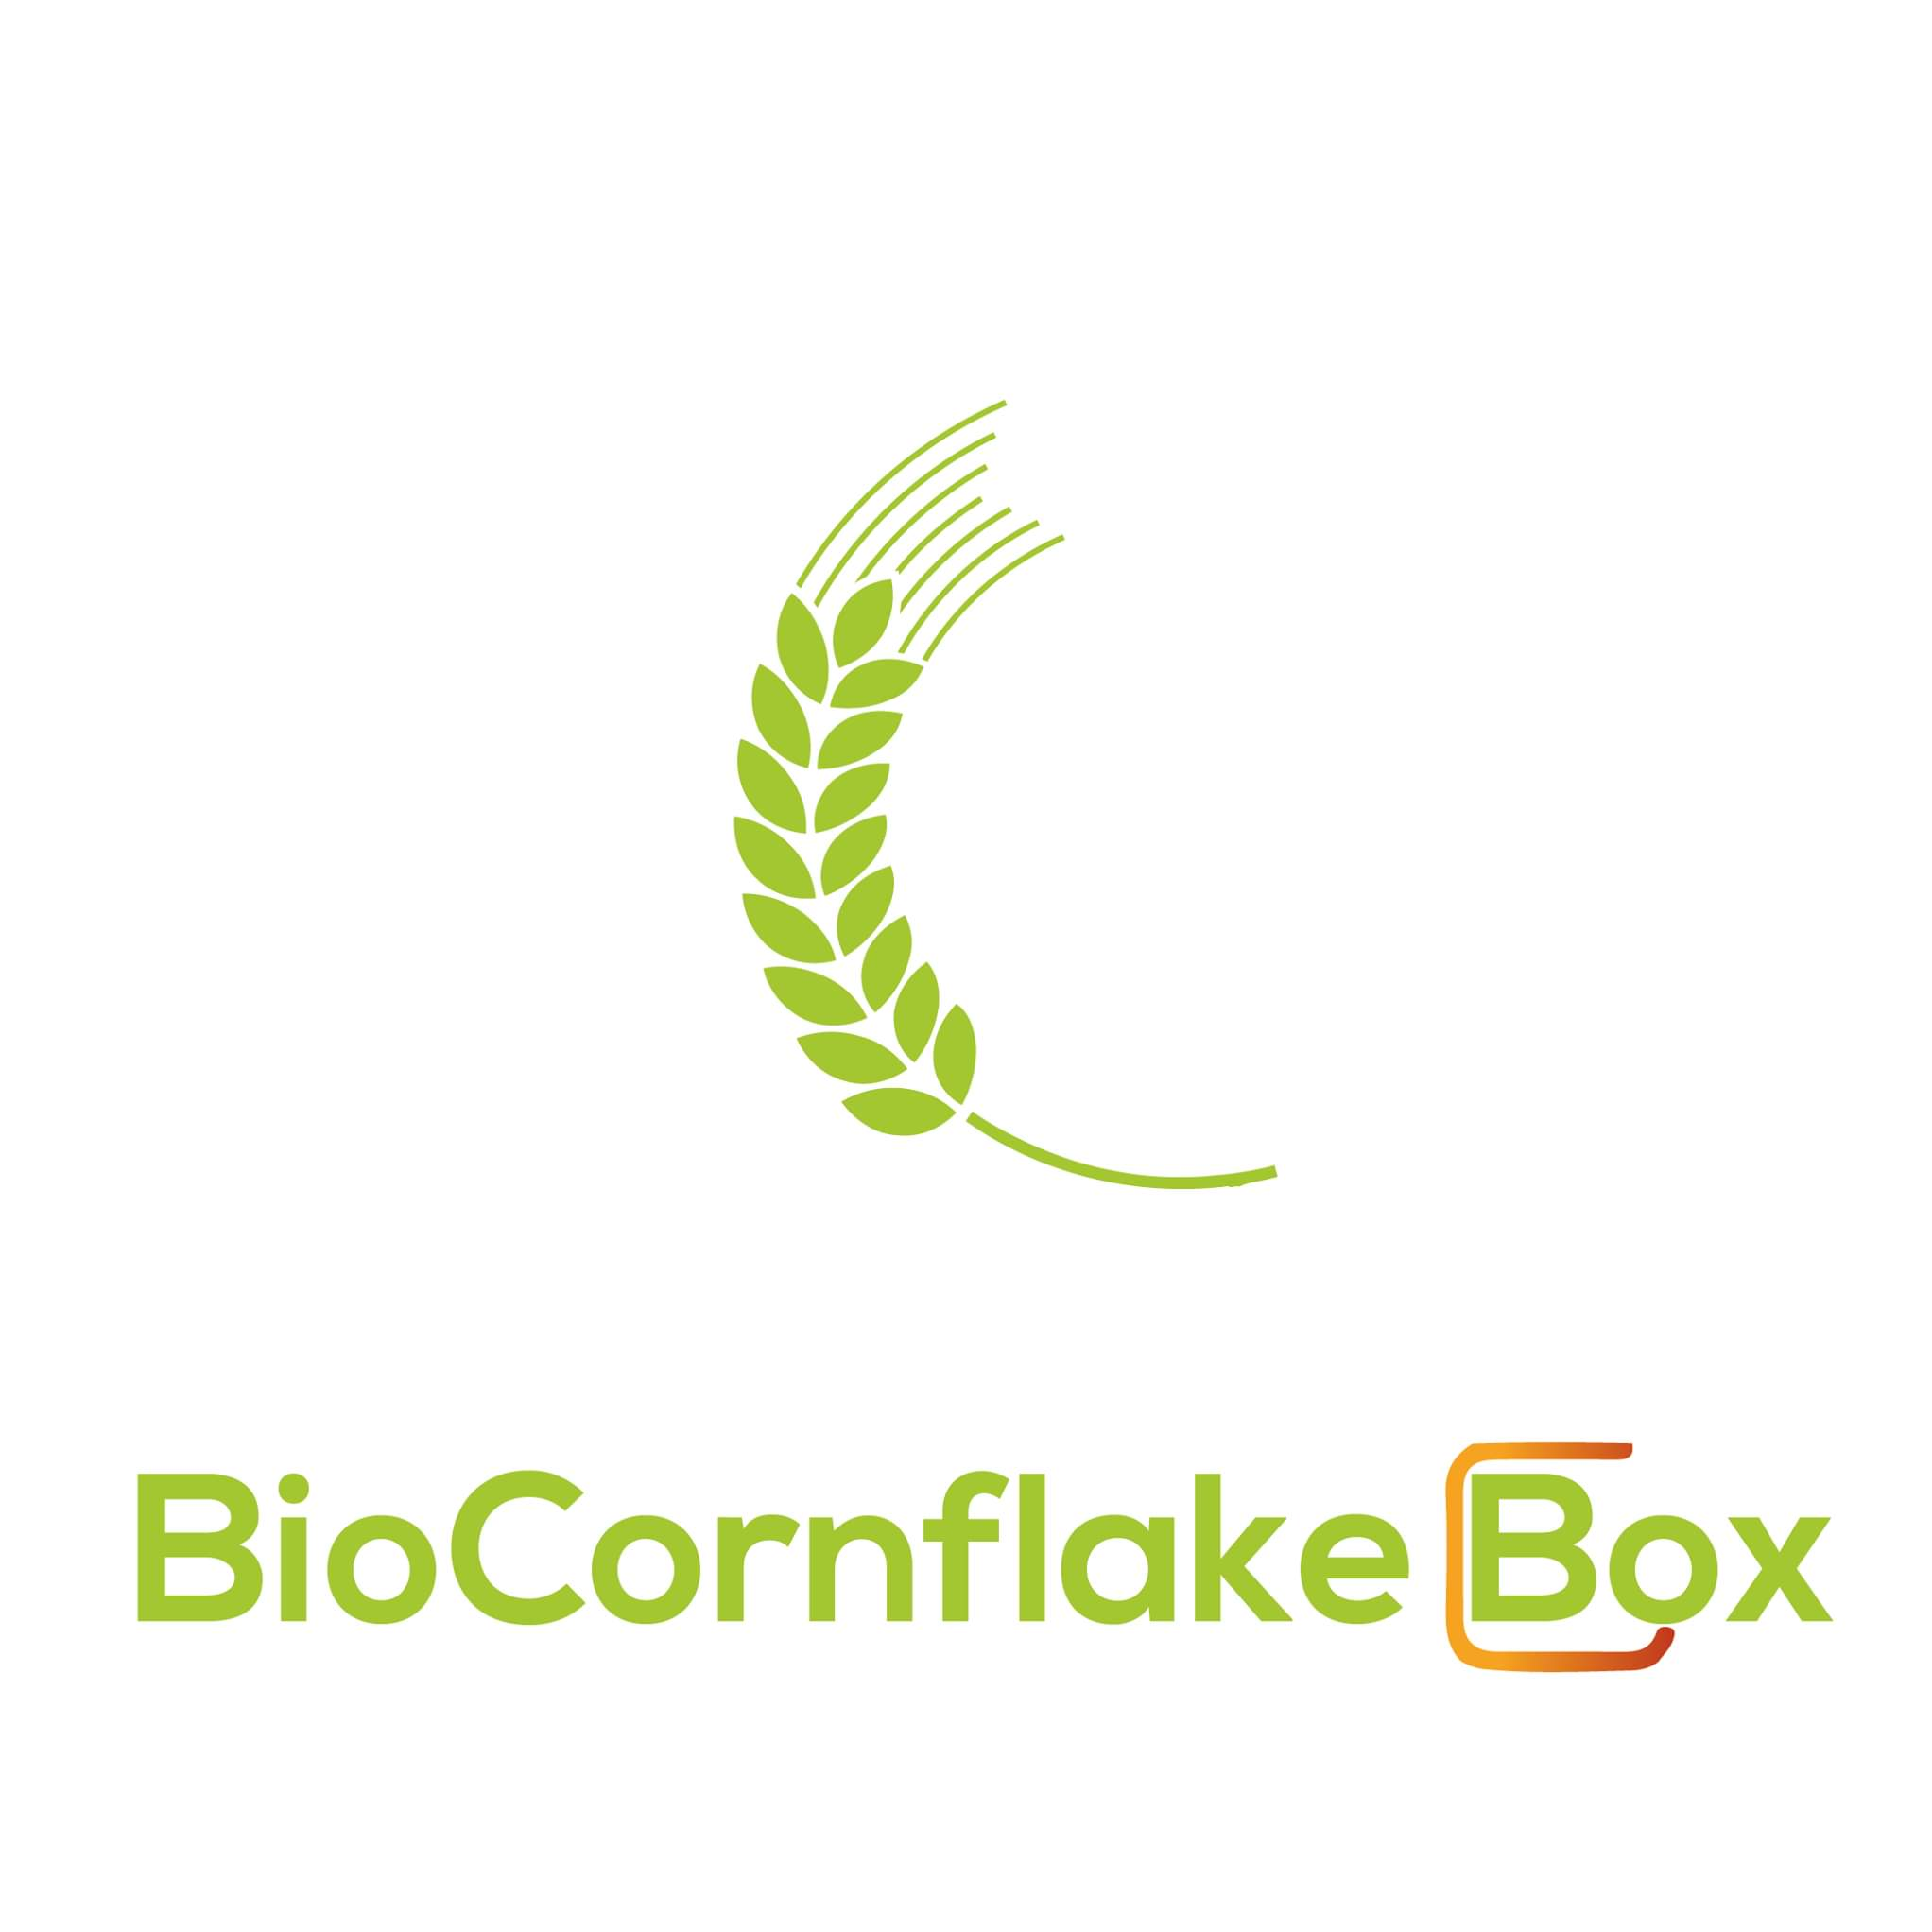 BioCornflakeBox